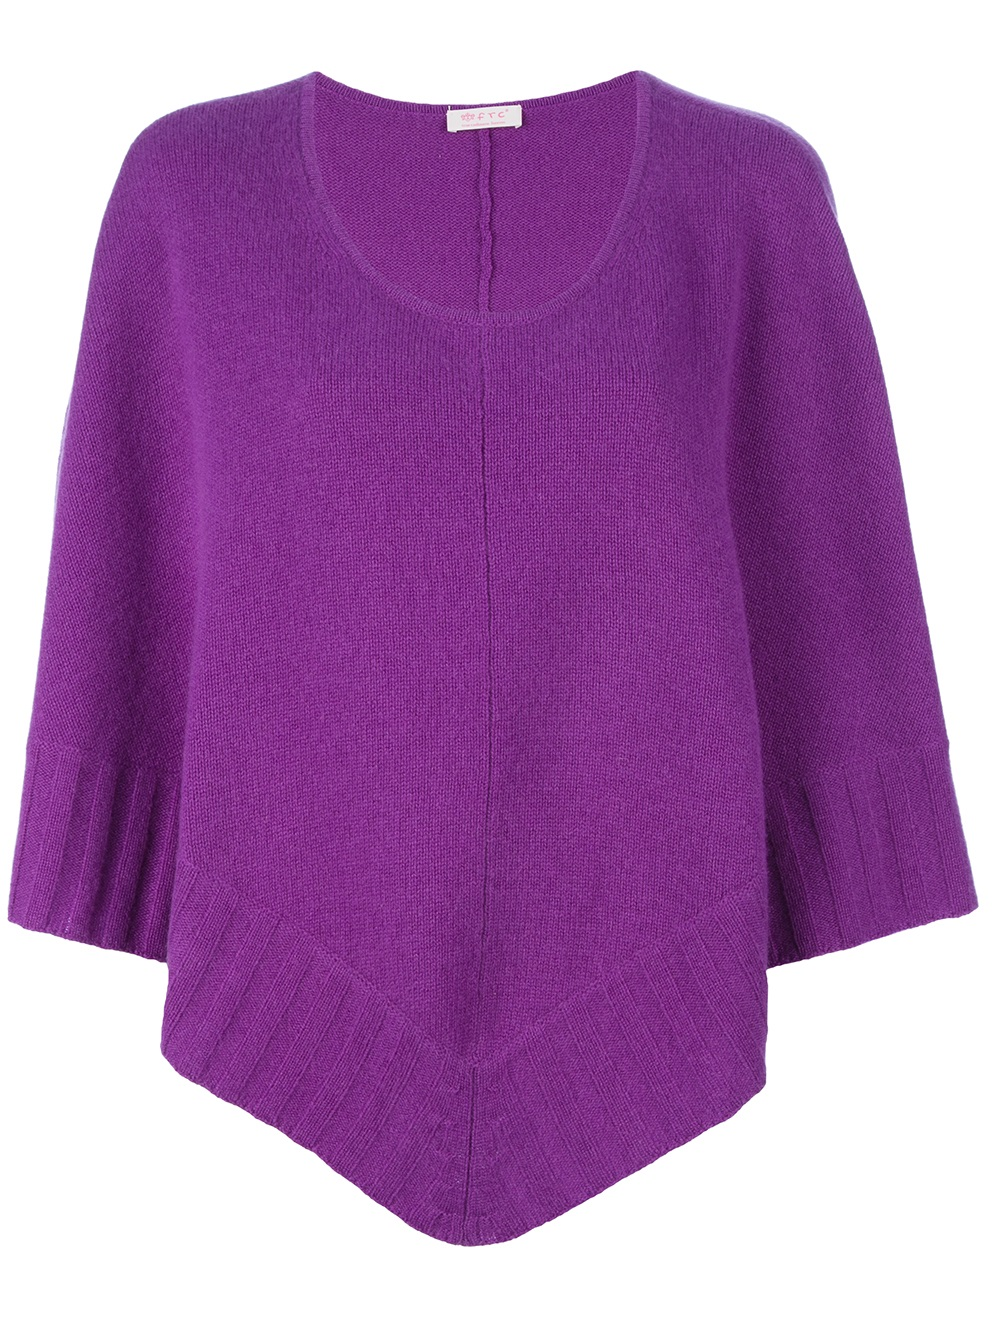 ftc cashmere poncho in purple pink purple lyst. Black Bedroom Furniture Sets. Home Design Ideas